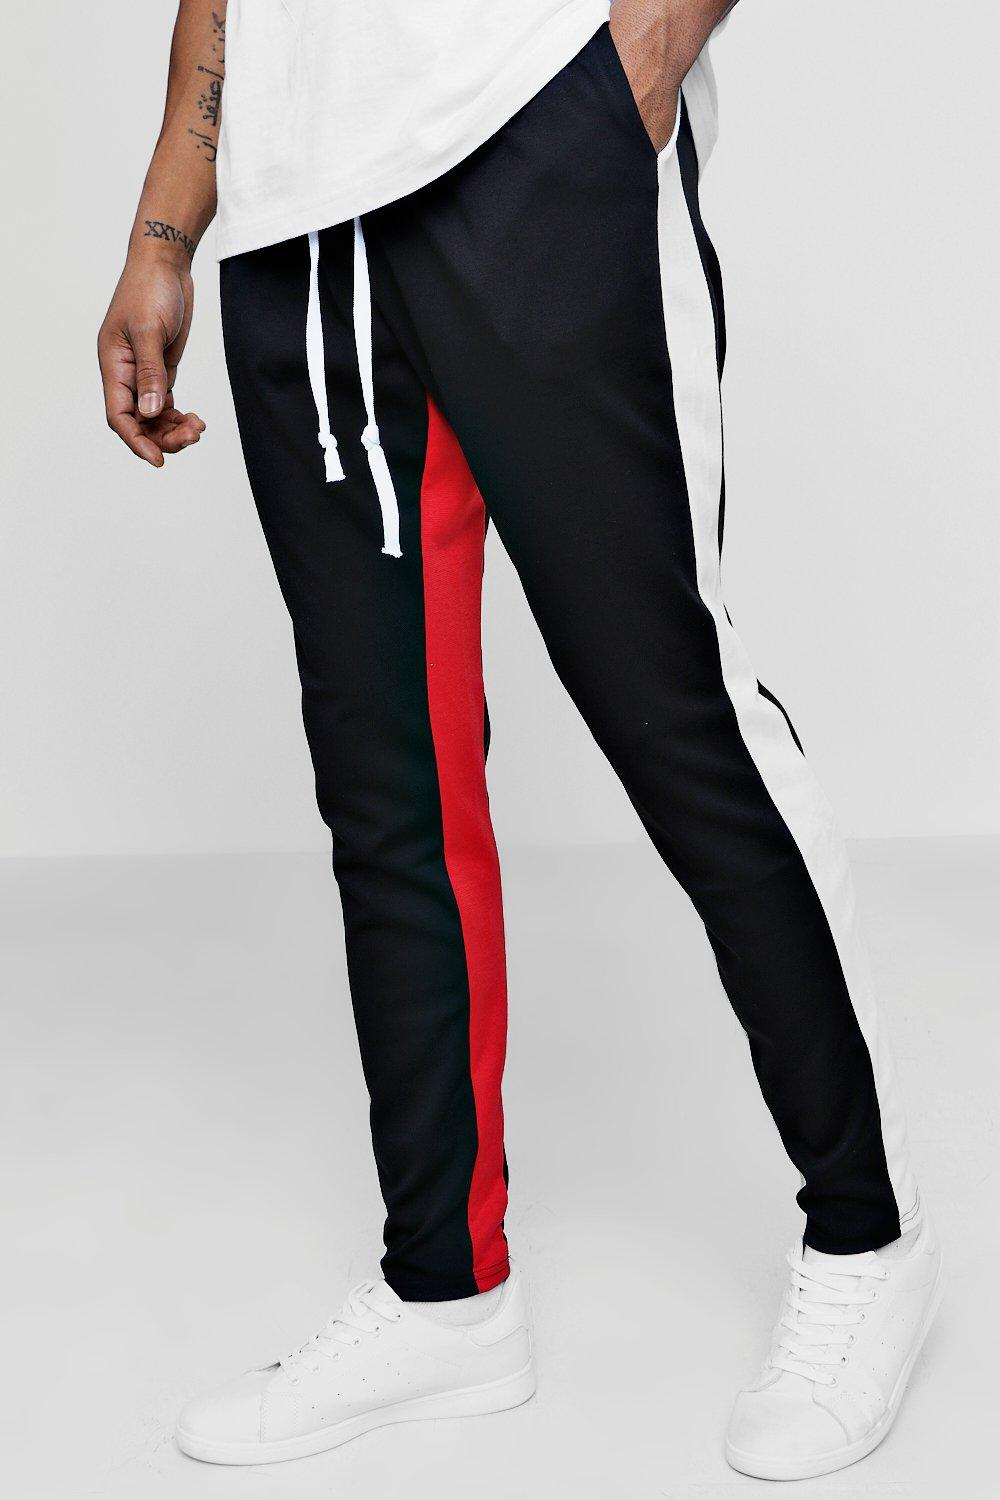 d6b7ef0f87e303 Mens Black Skinny Fit Panel Joggers. Hover to zoom